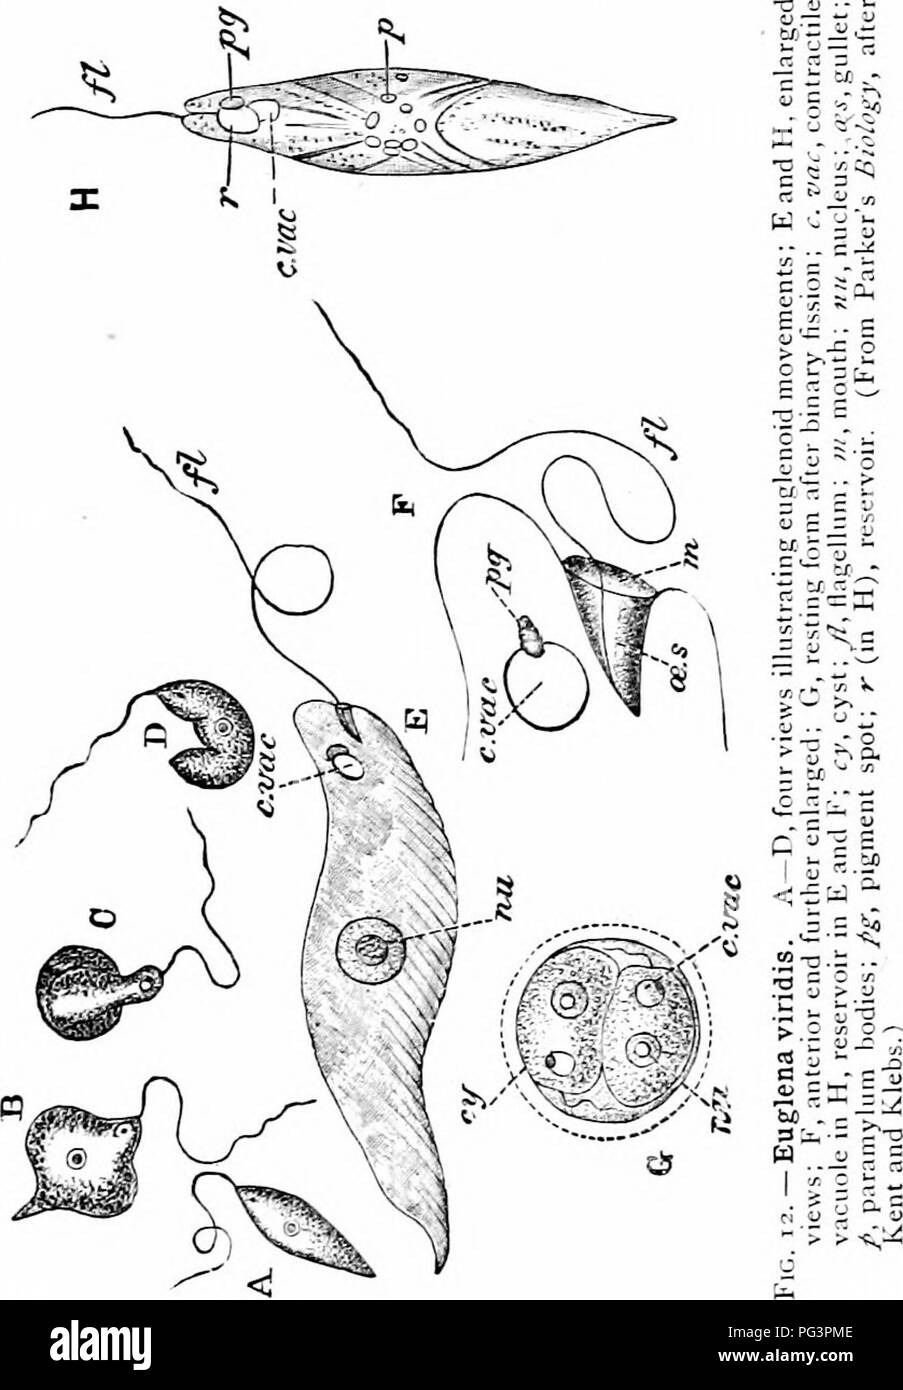 hight resolution of phylum protozoa 35 the body of euglena